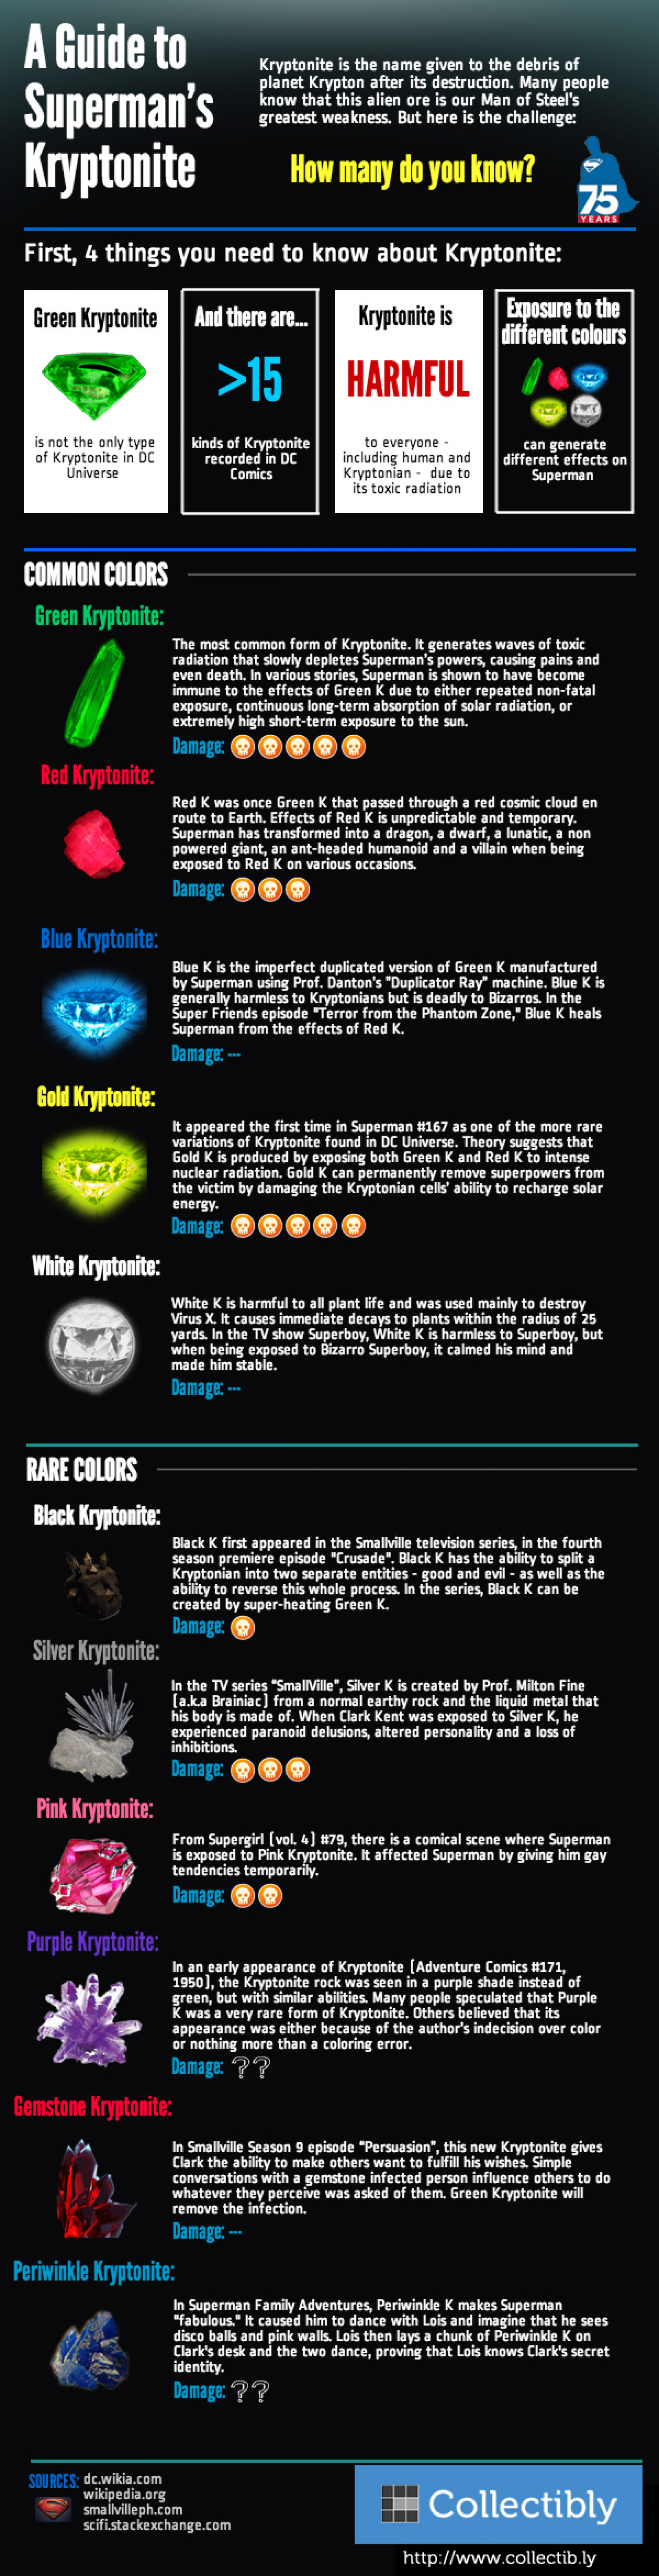 A Guide to Superman's Kryptonite Infographic